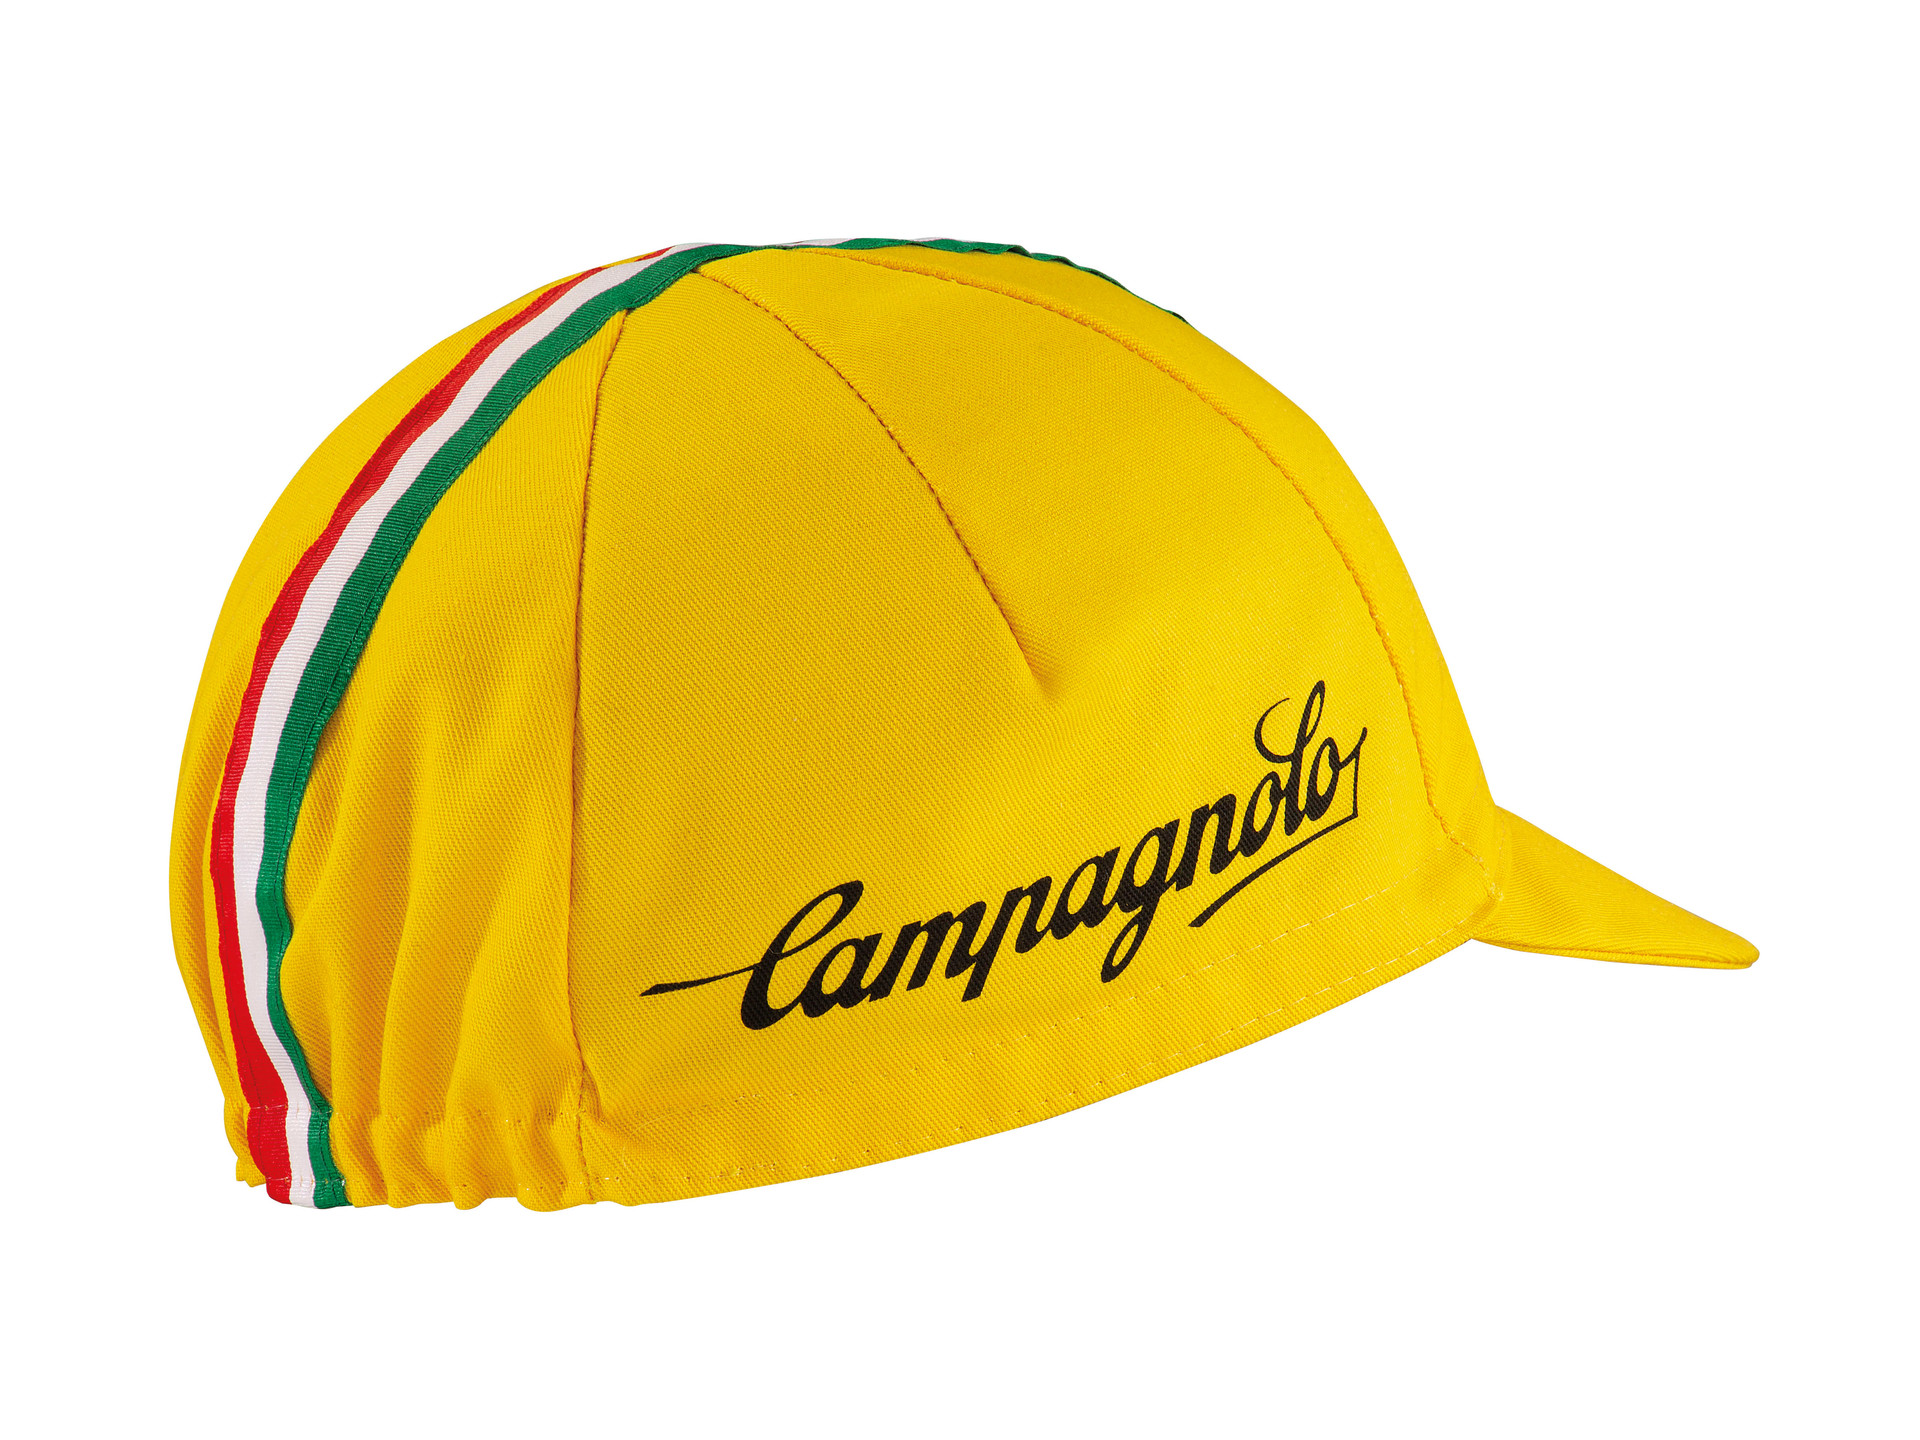 NEW Campagnolo Classic Cycling Cap Red Made in Italy Ideal Cyclist Gift